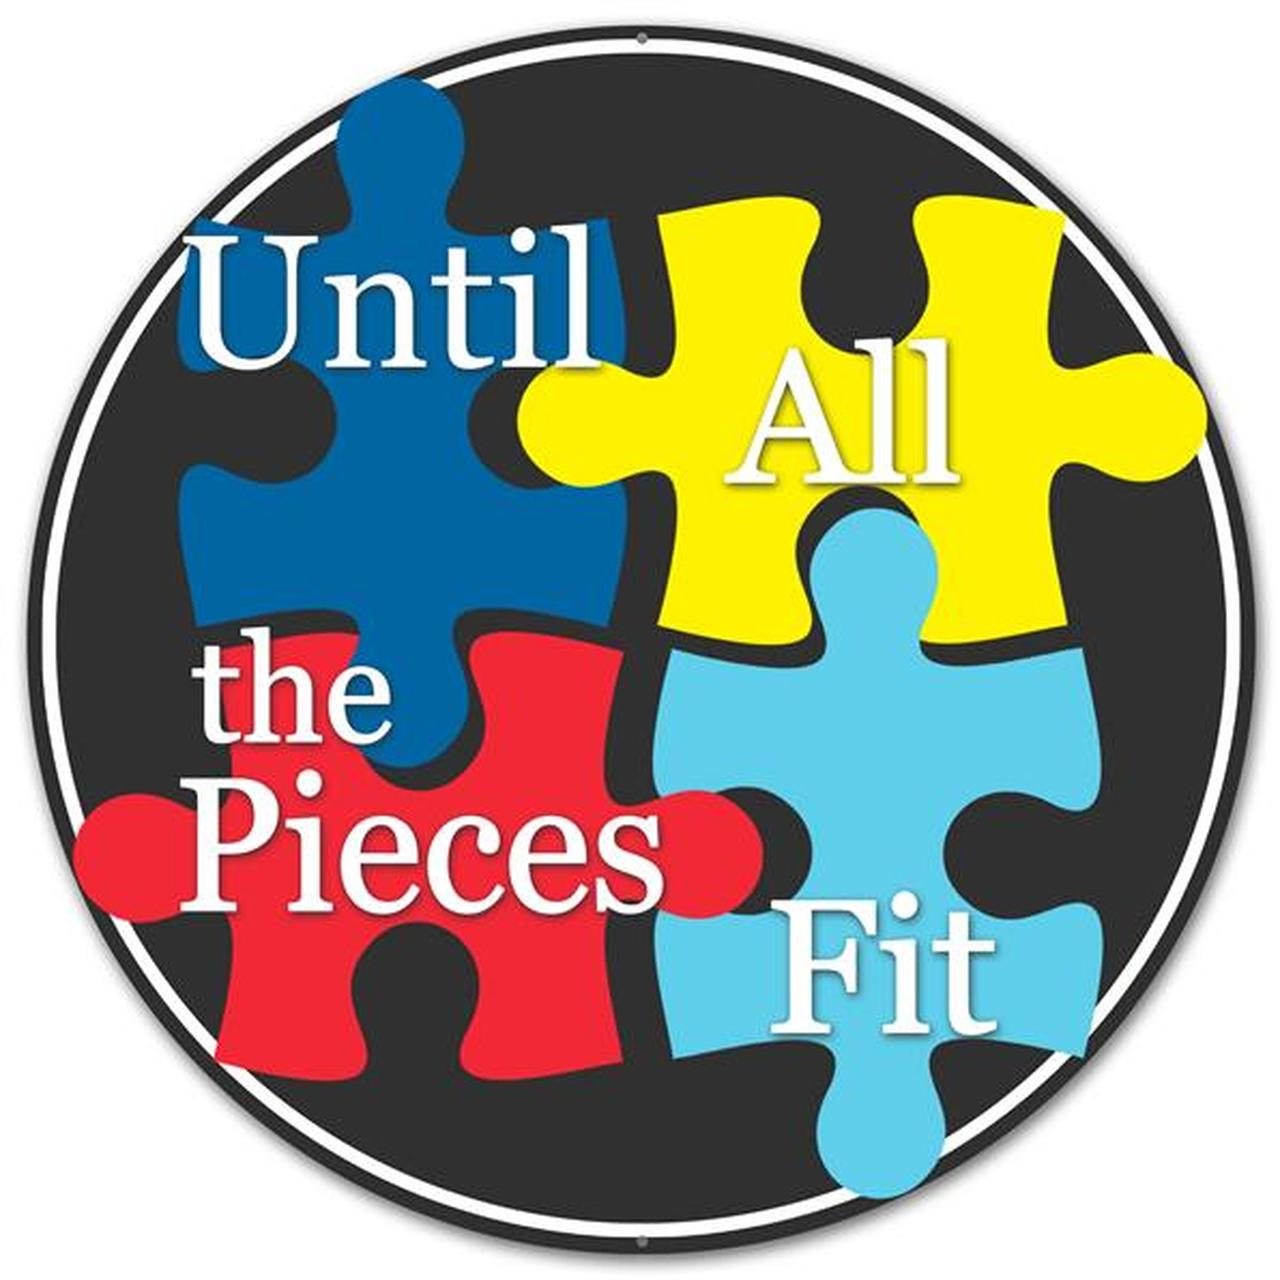 puzzle piece photo that says Until All the Pieces Fit